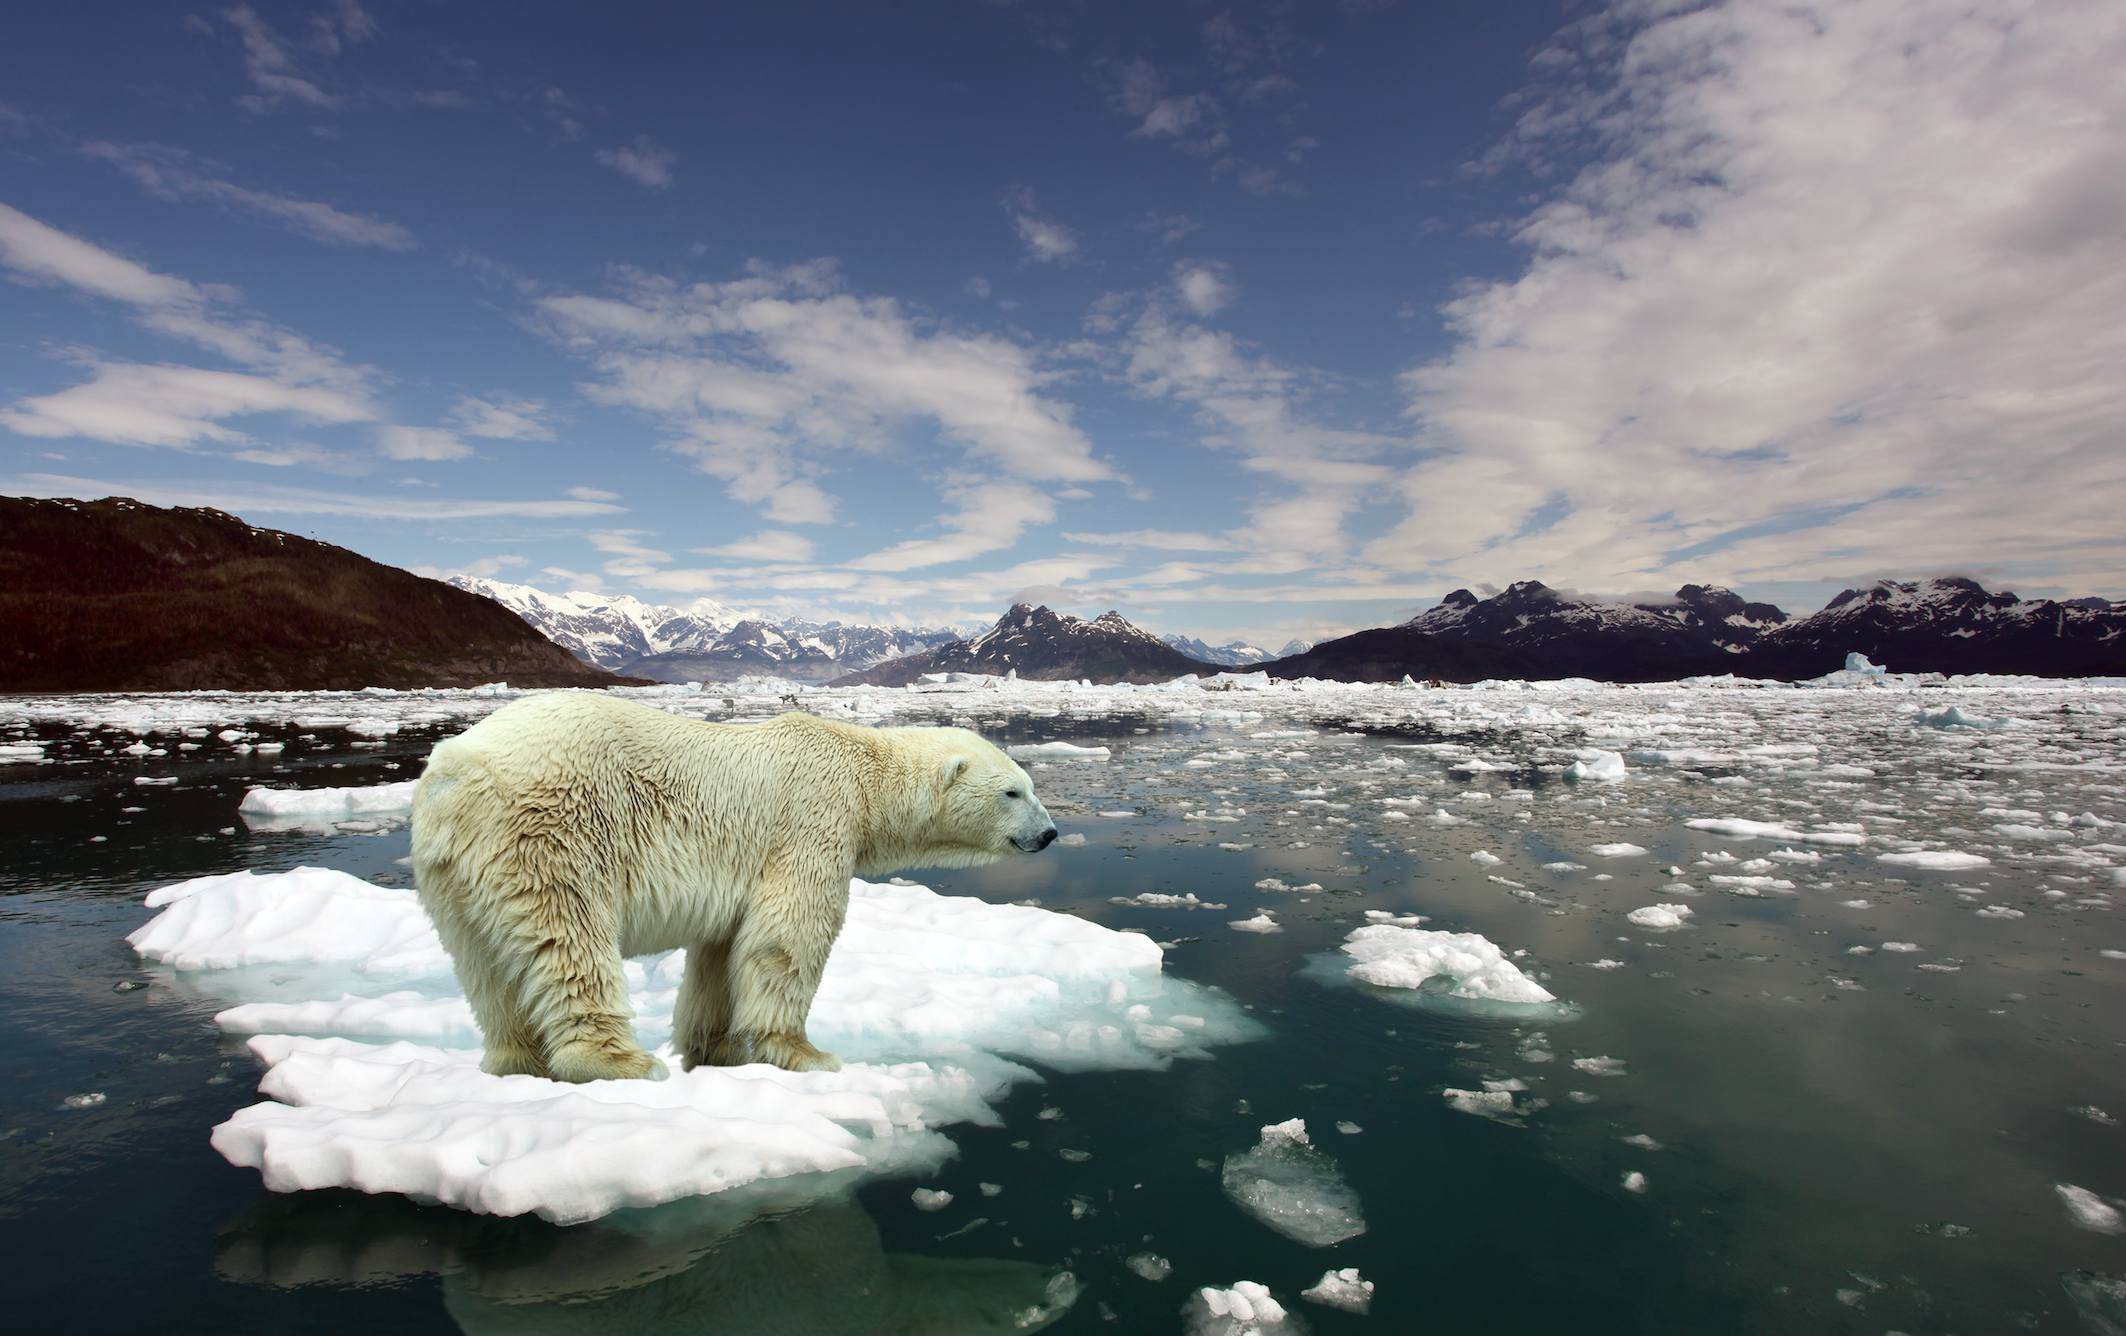 A polar bear standing on a melting ice cap